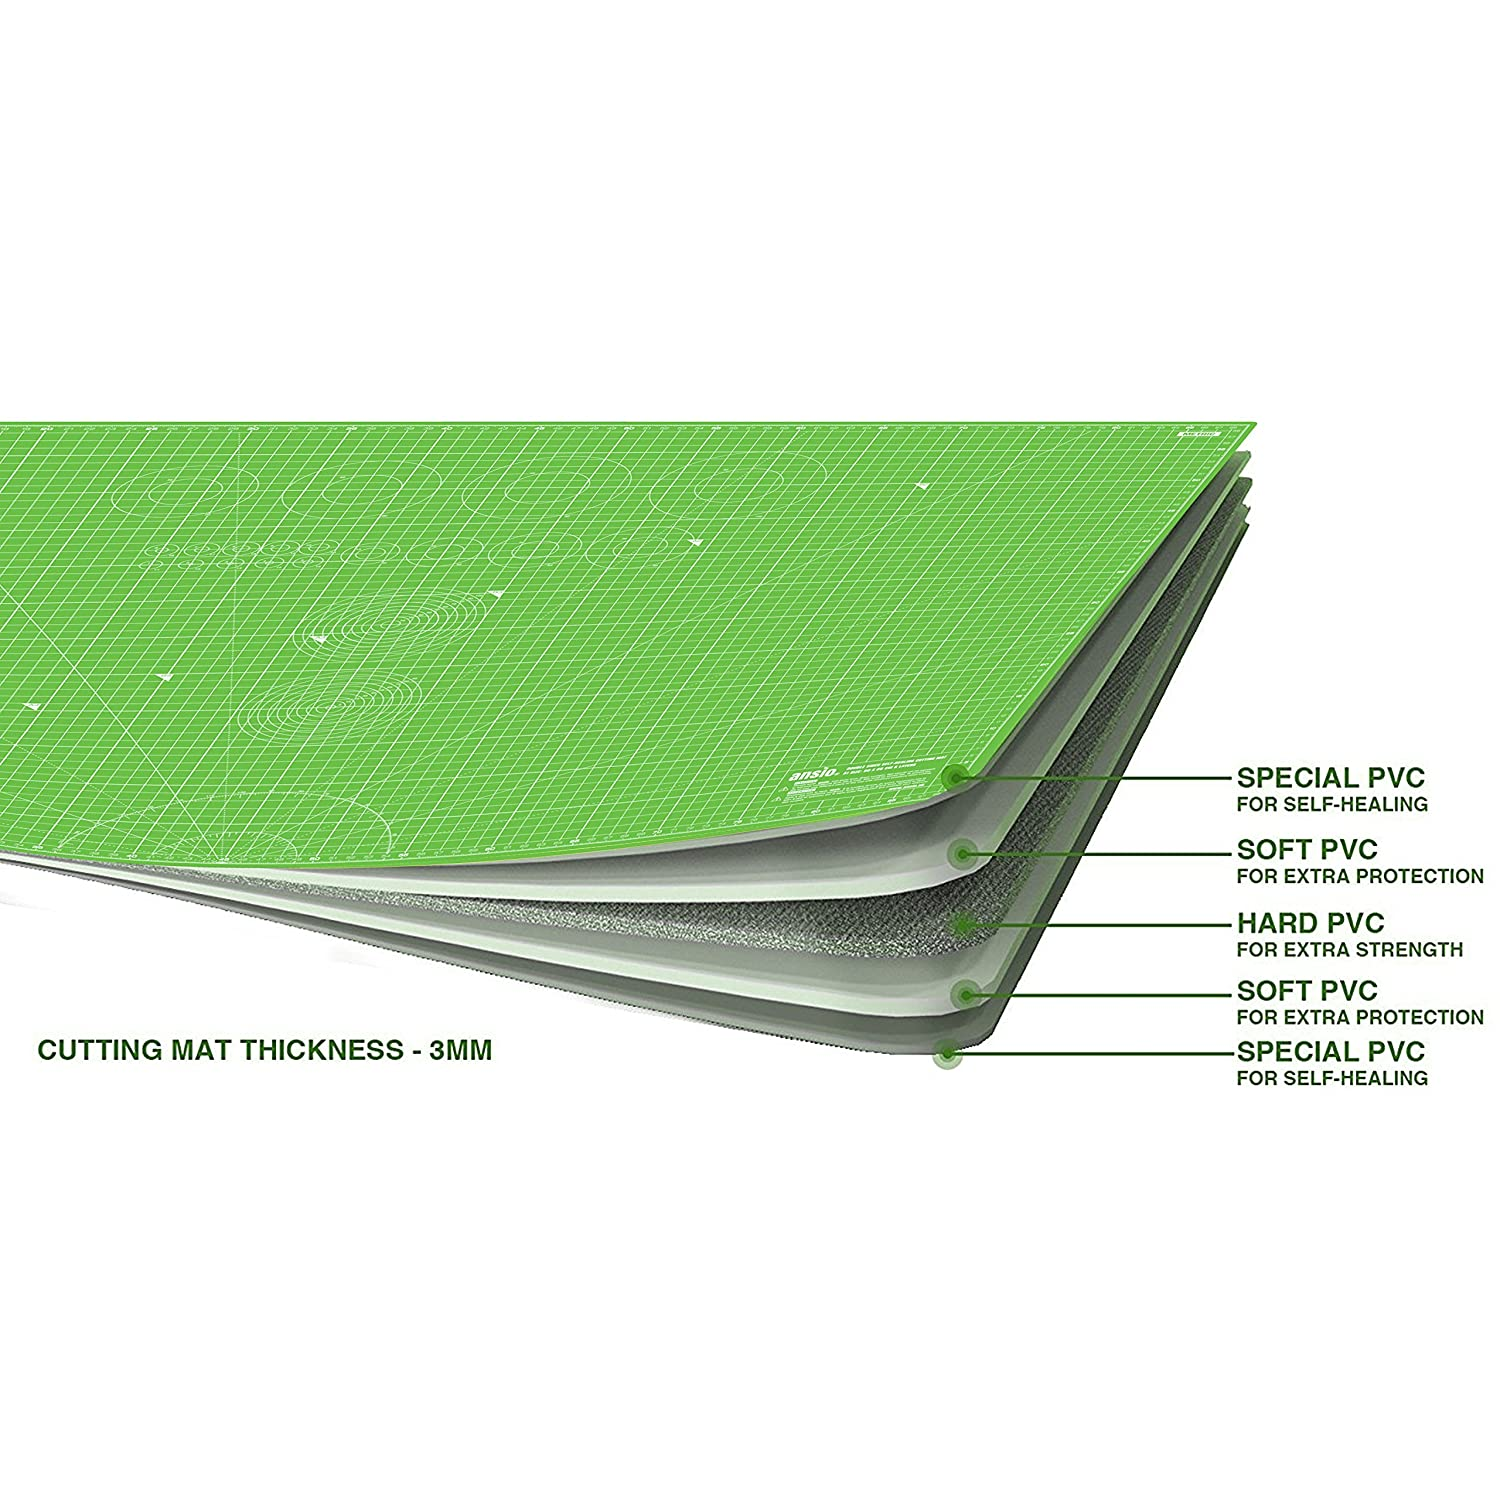 ANSIO A0 Double Sided Self Healing 5 Layers Cutting Mat Imperial/Metric 46 Inch x 33.5 Inch / 118cm x 86cm - Sky Blue/Lime Green